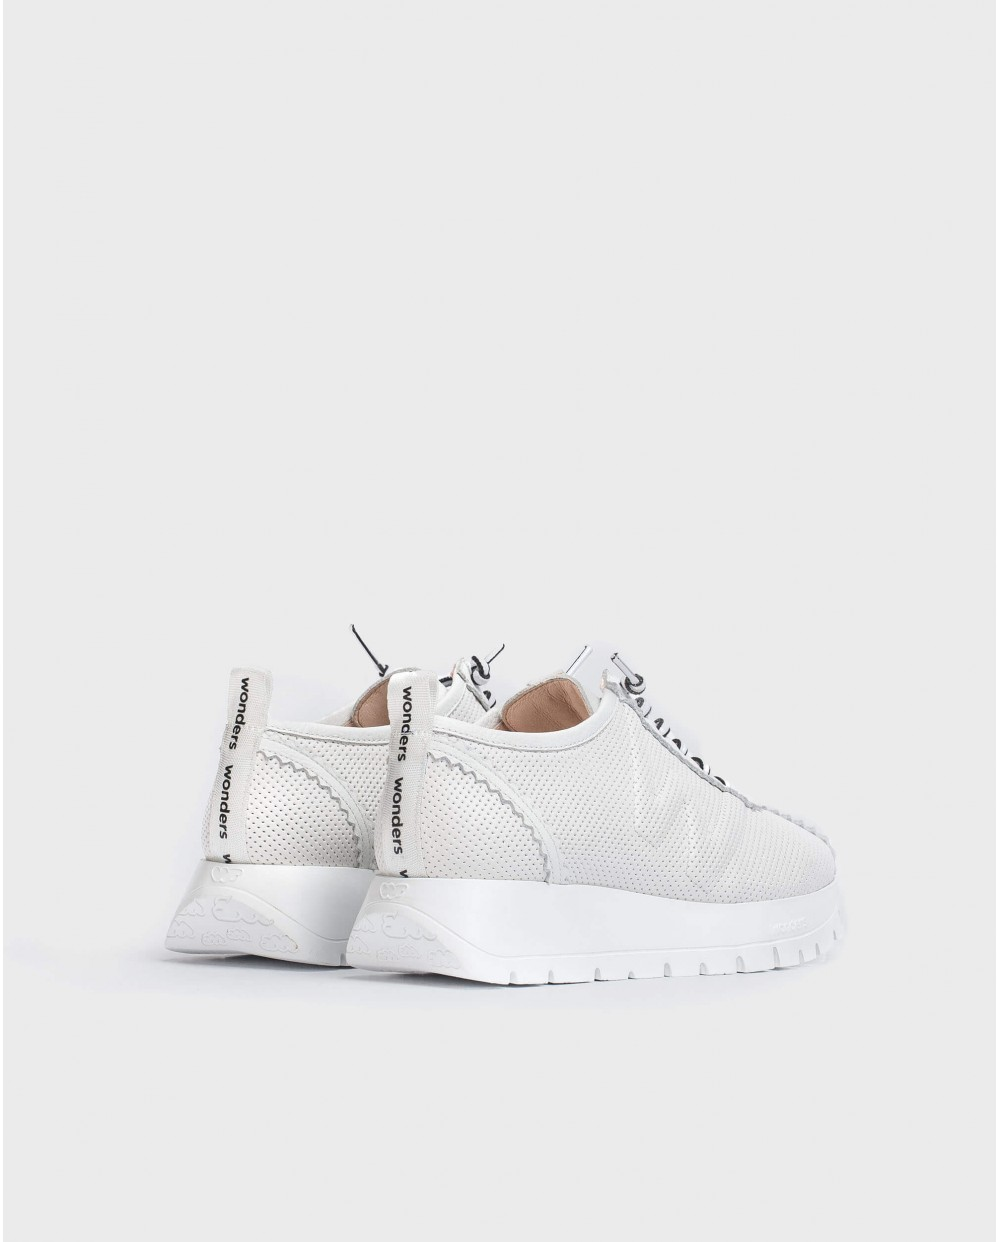 Wonders-Flat Shoes-Sneaker in perforated leather